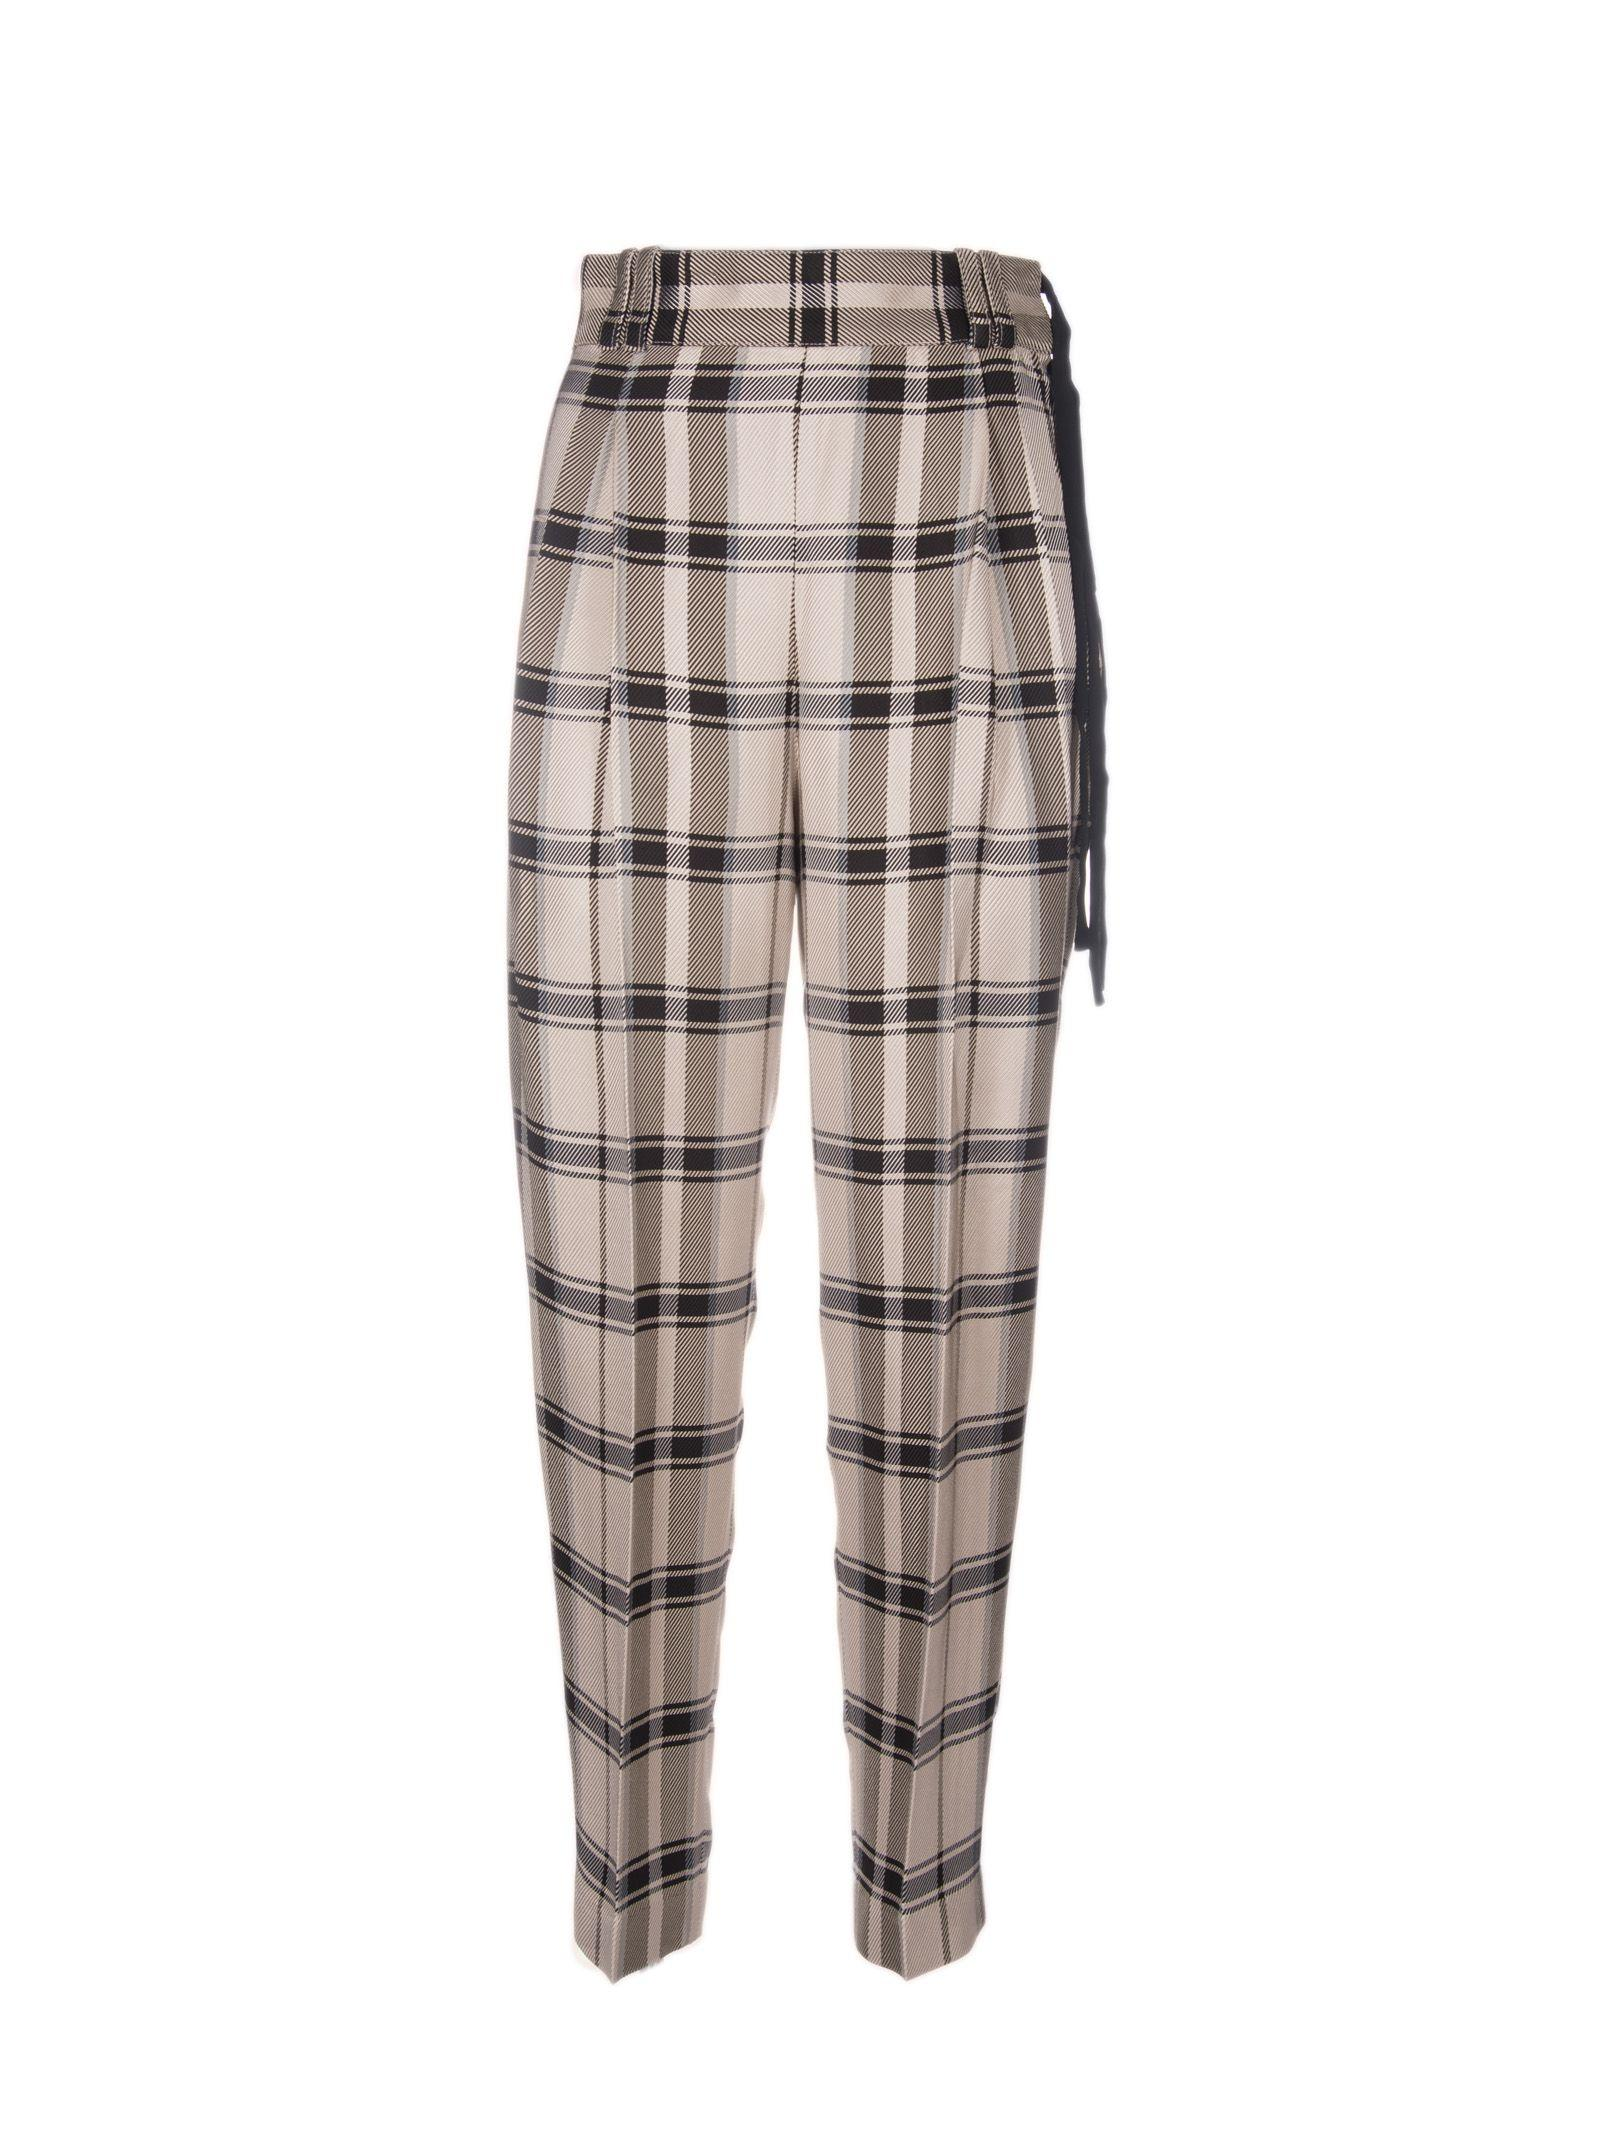 3.1 Phillip Lim Check Trousers